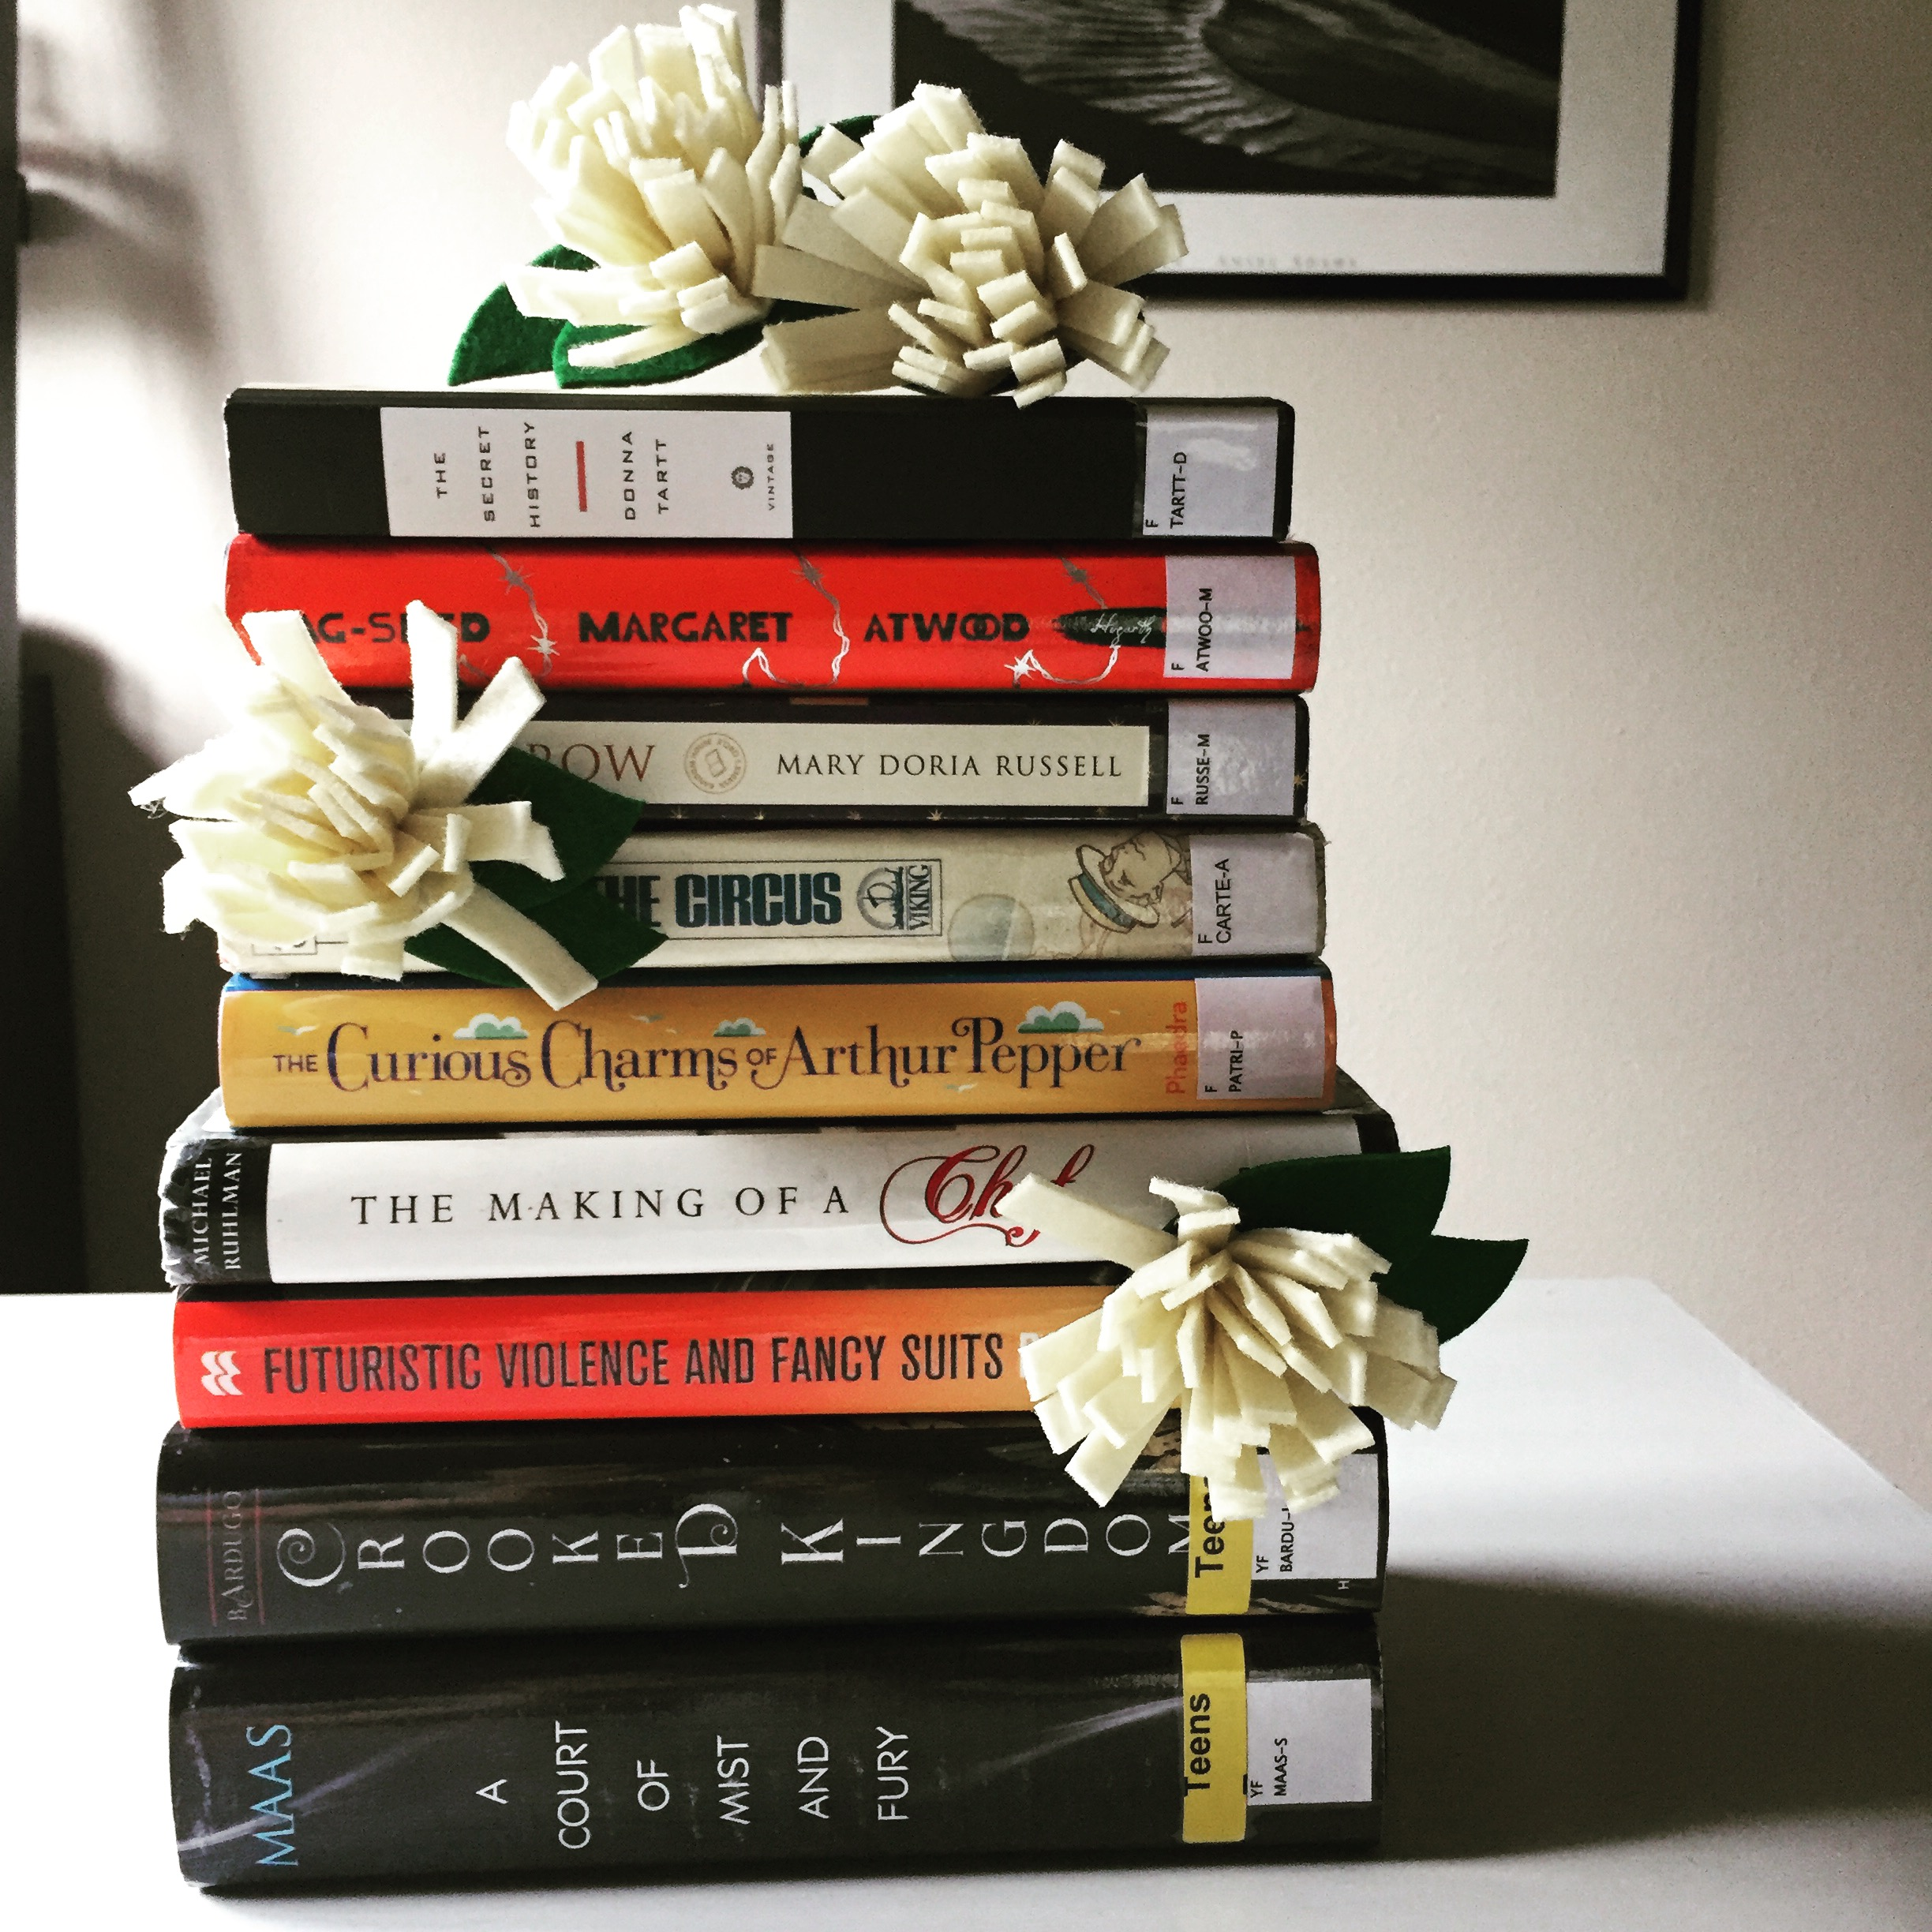 Effectively Managing Your TBR